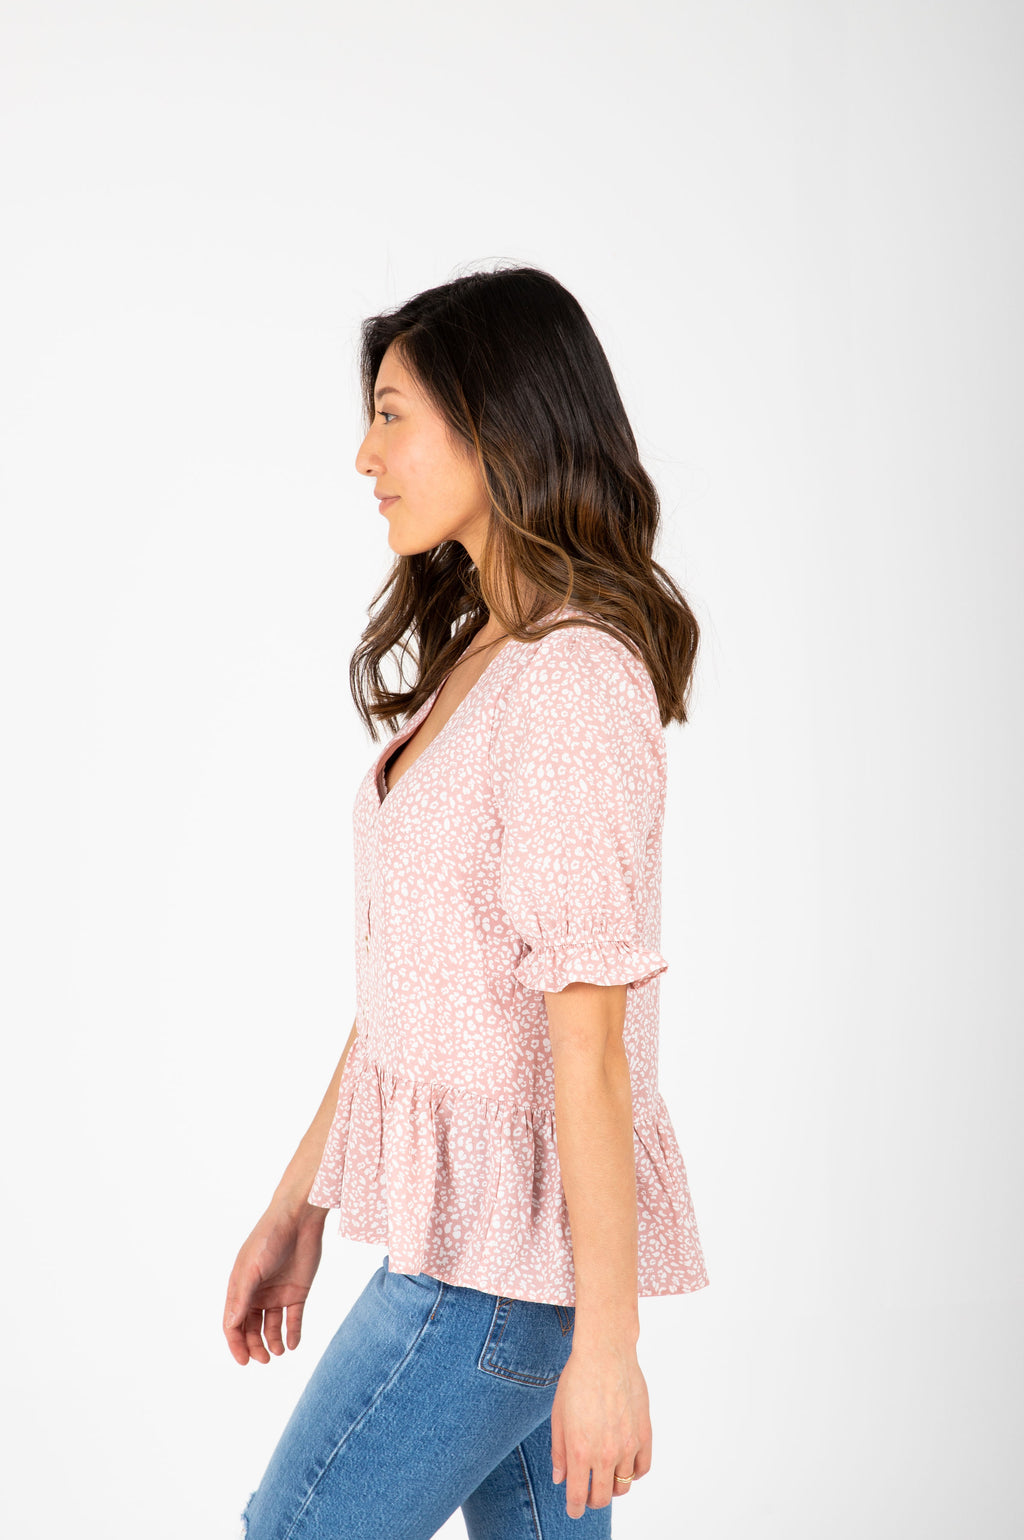 The Iris Patterned Peplum Blouse in Blush